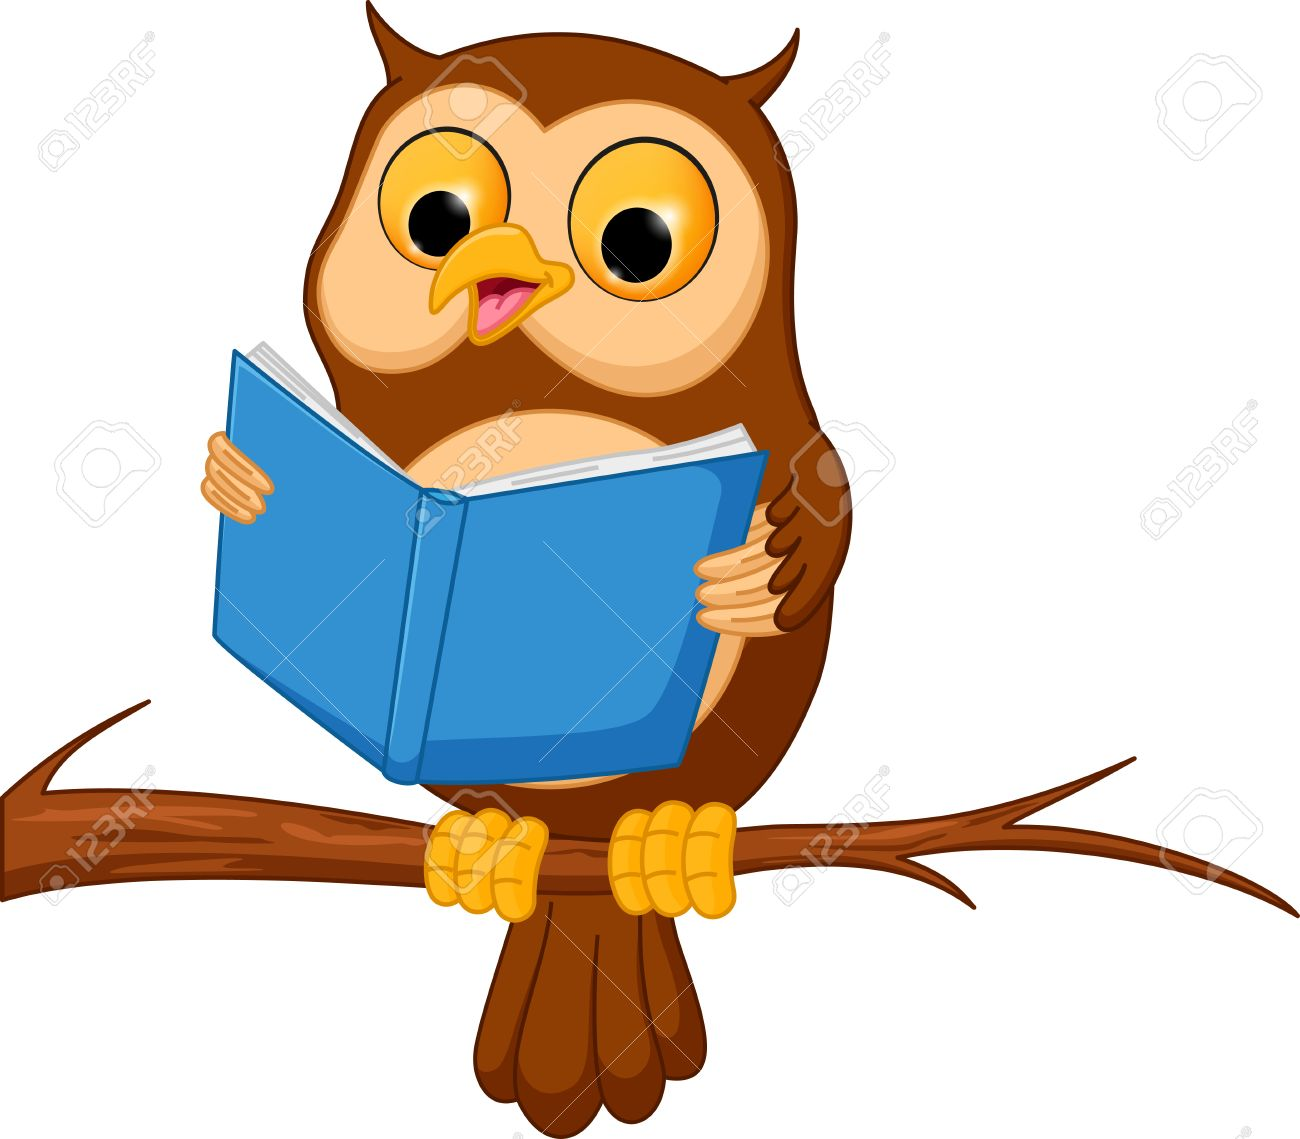 owl cartoon reading a book royalty free cliparts vectors and stock rh 123rf com